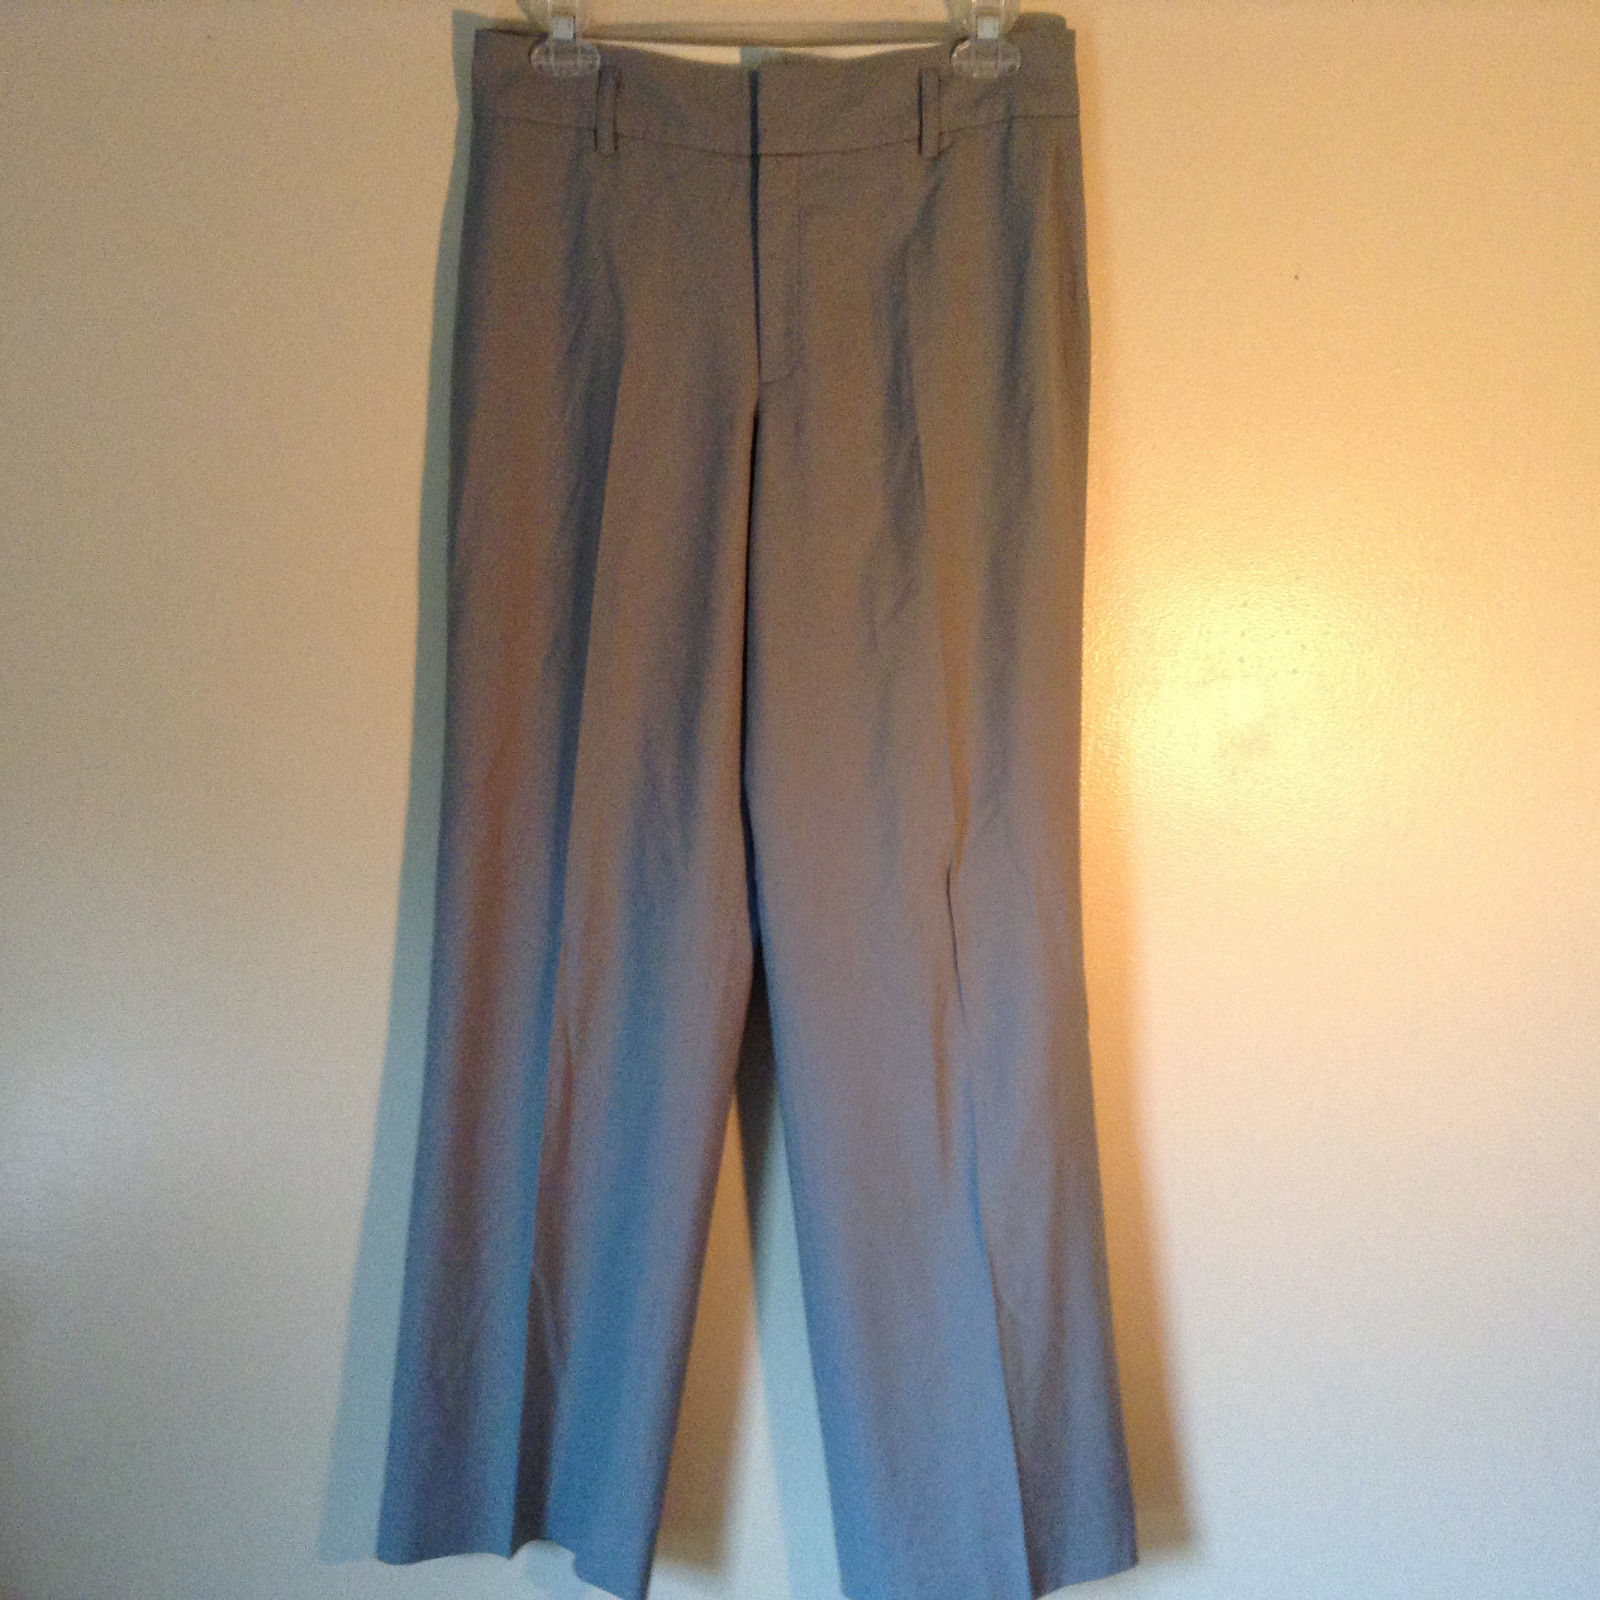 Light Blue Dress Pants with Belt Loops by Banana Republic Stretch Size 6